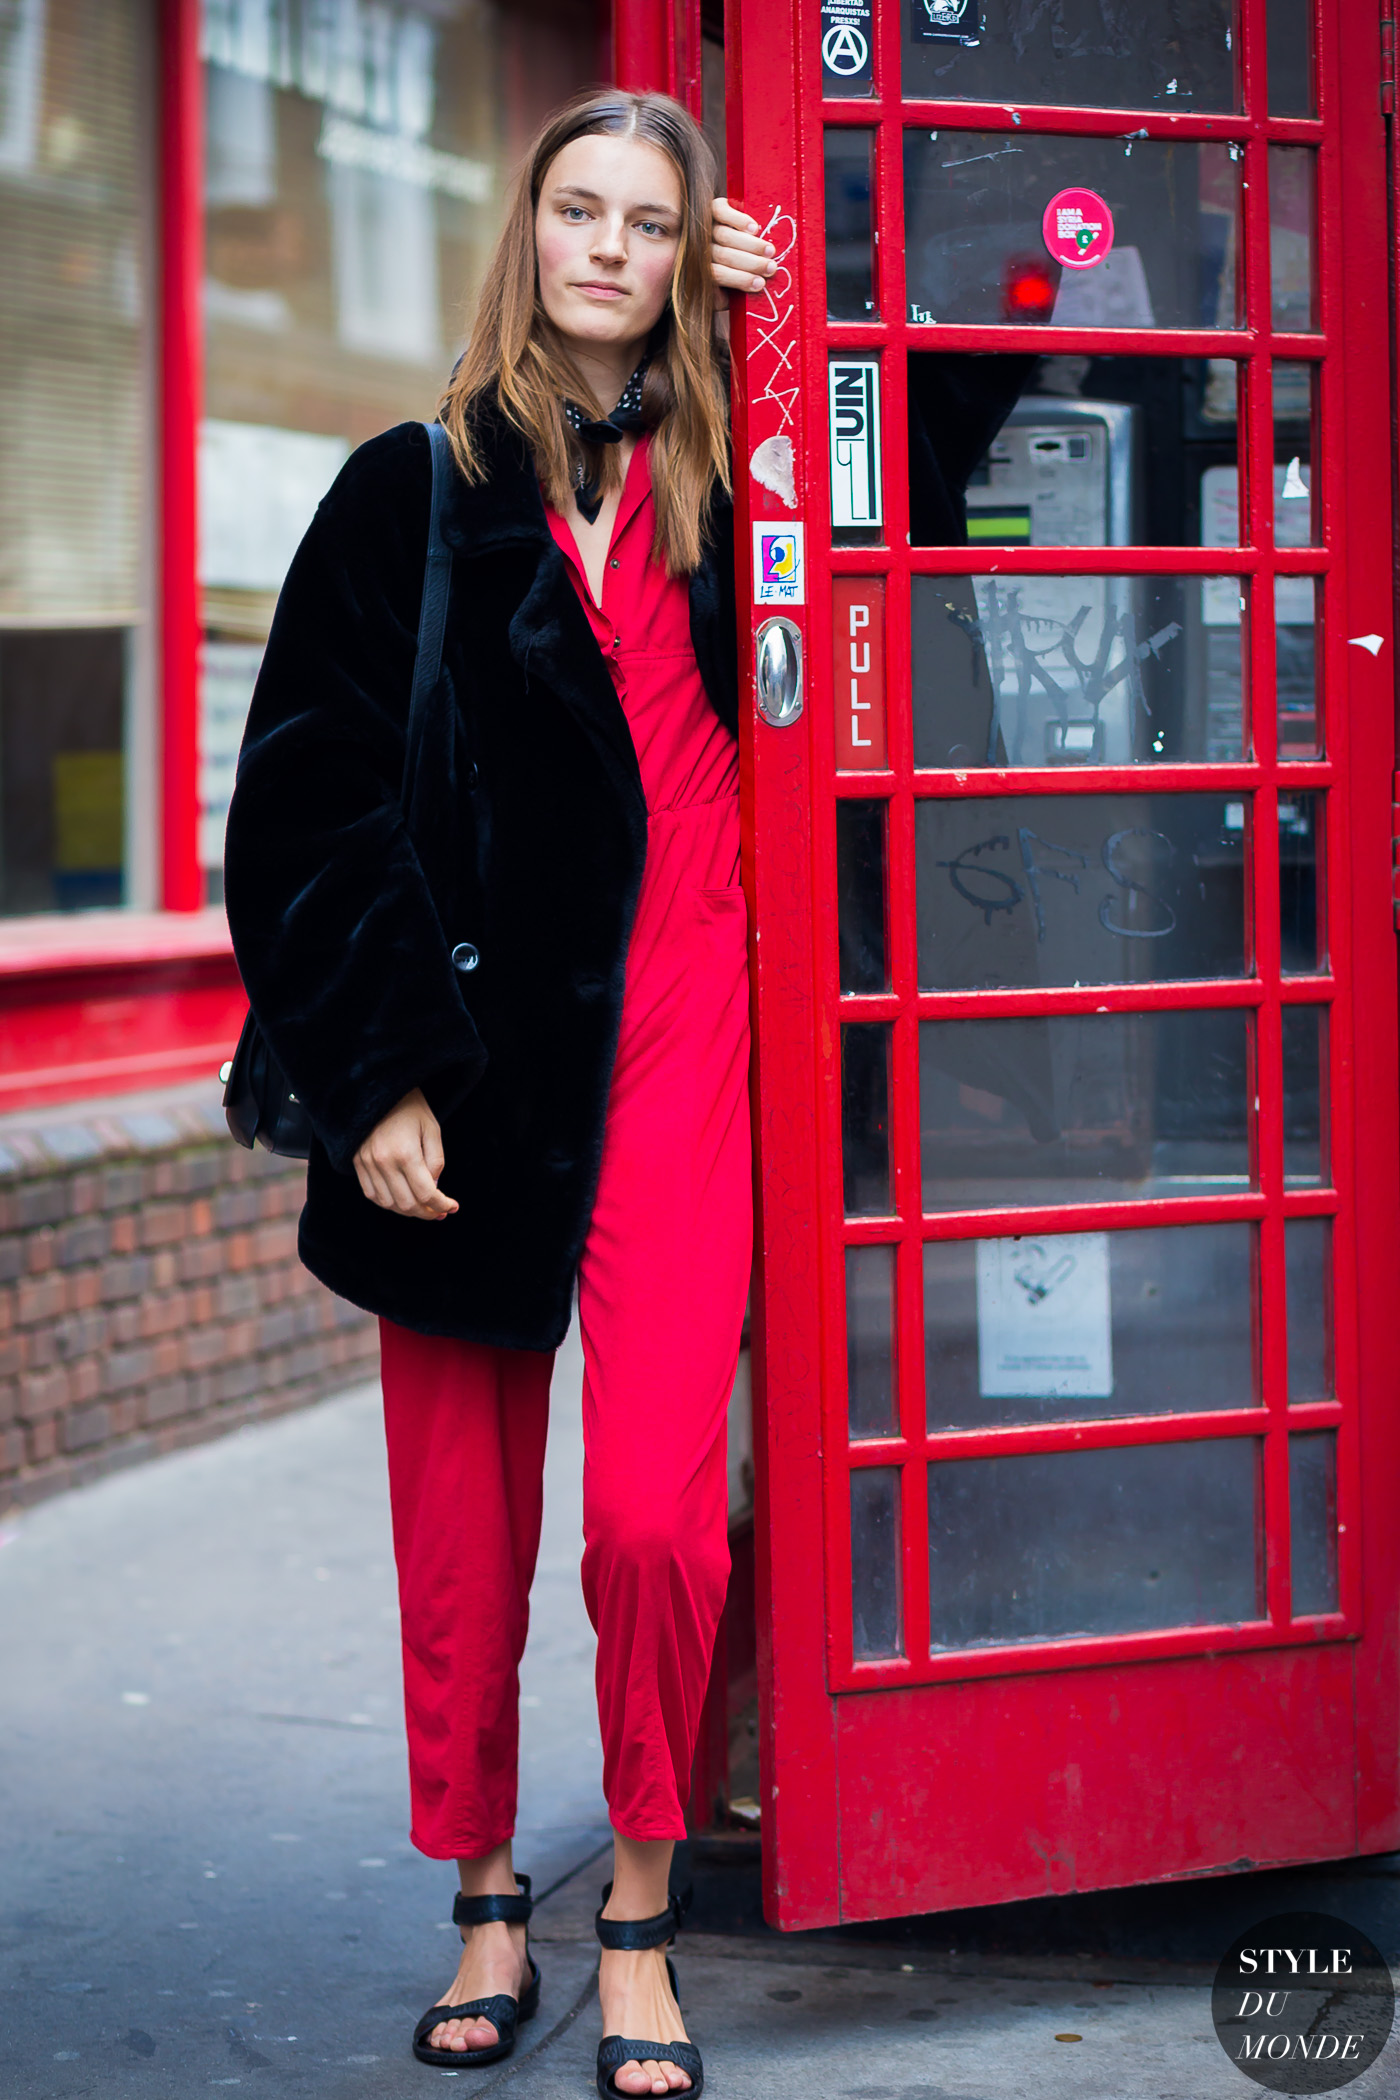 Laura Kampman Street Style Street Fashion Streetsnaps by STYLEDUMONDE Street Style Fashion Photography